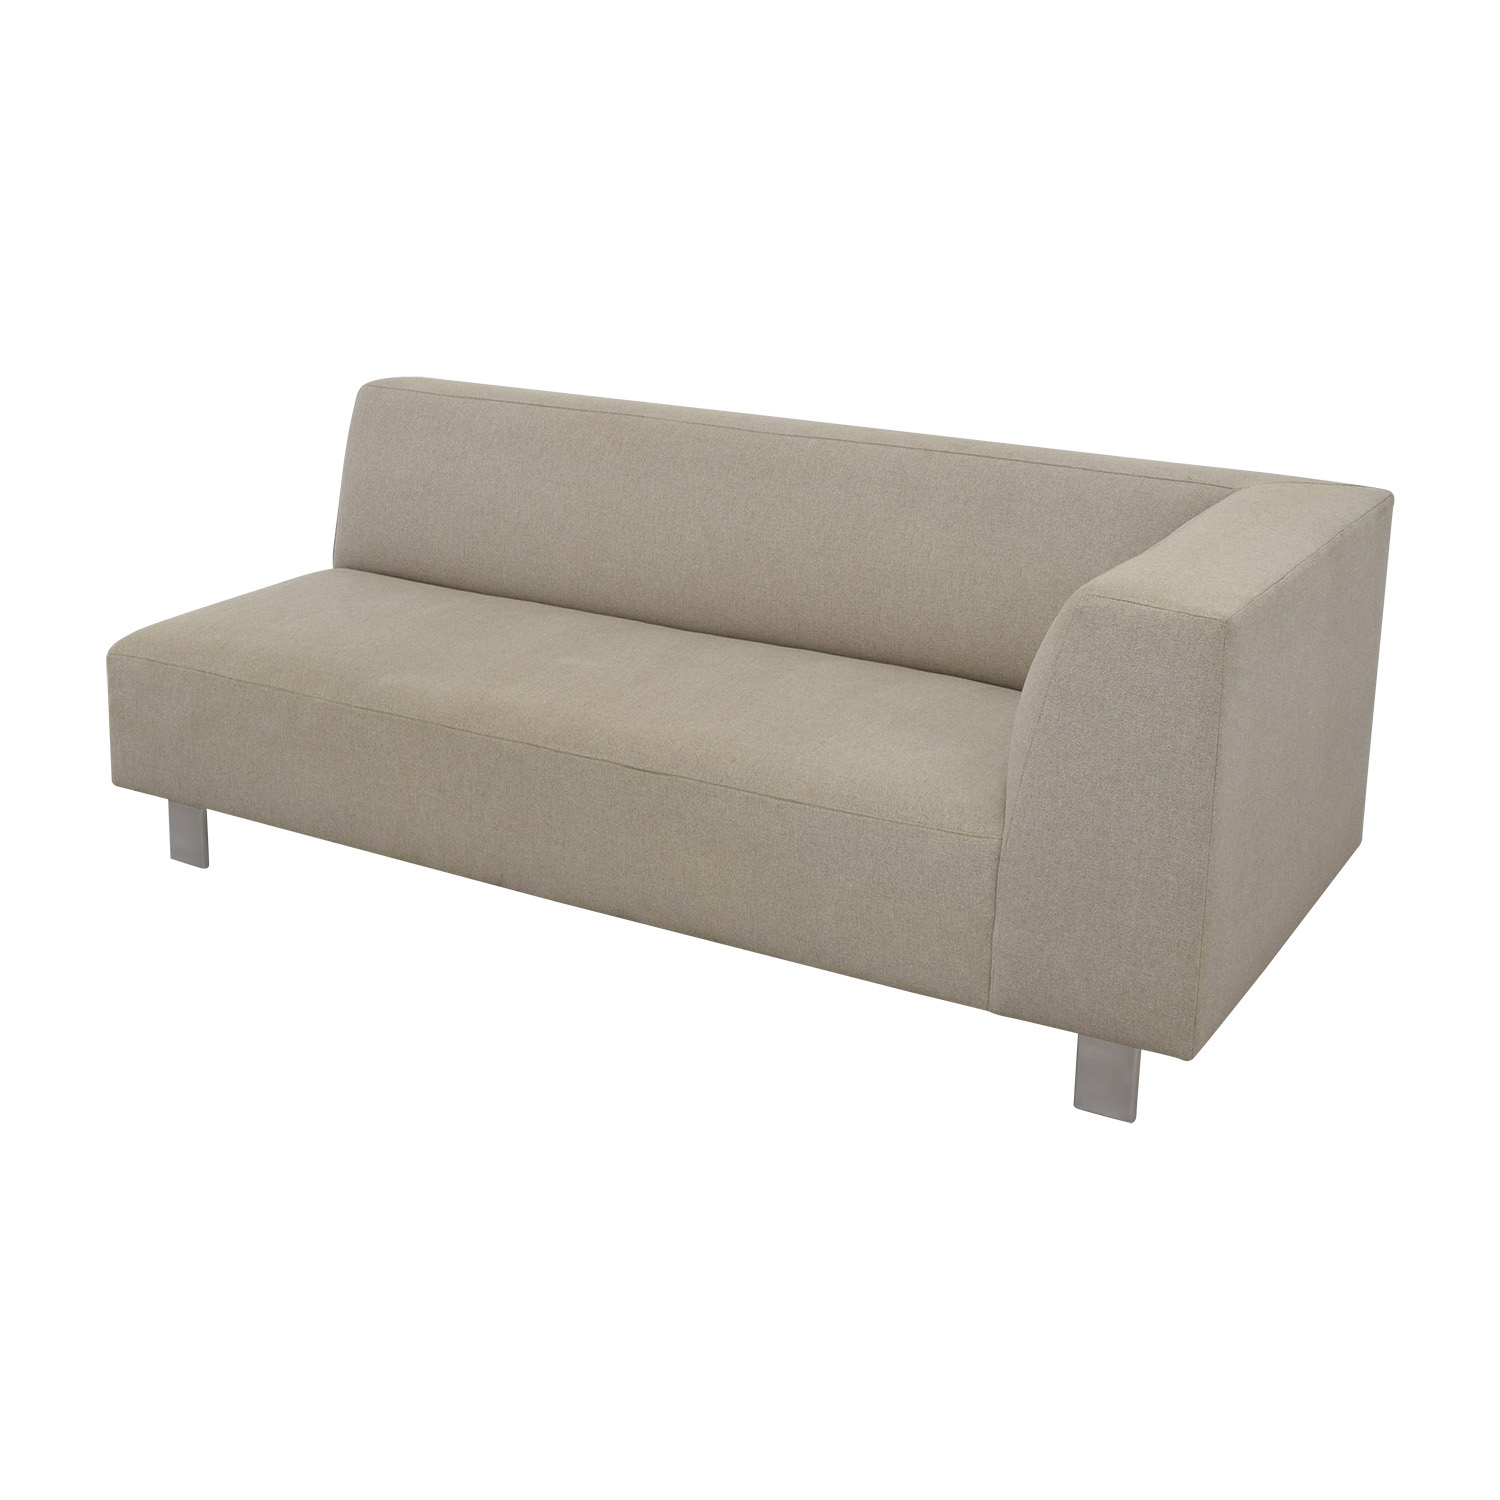 Room & Board Room & Board Chelsea Left-Arm Sofa price